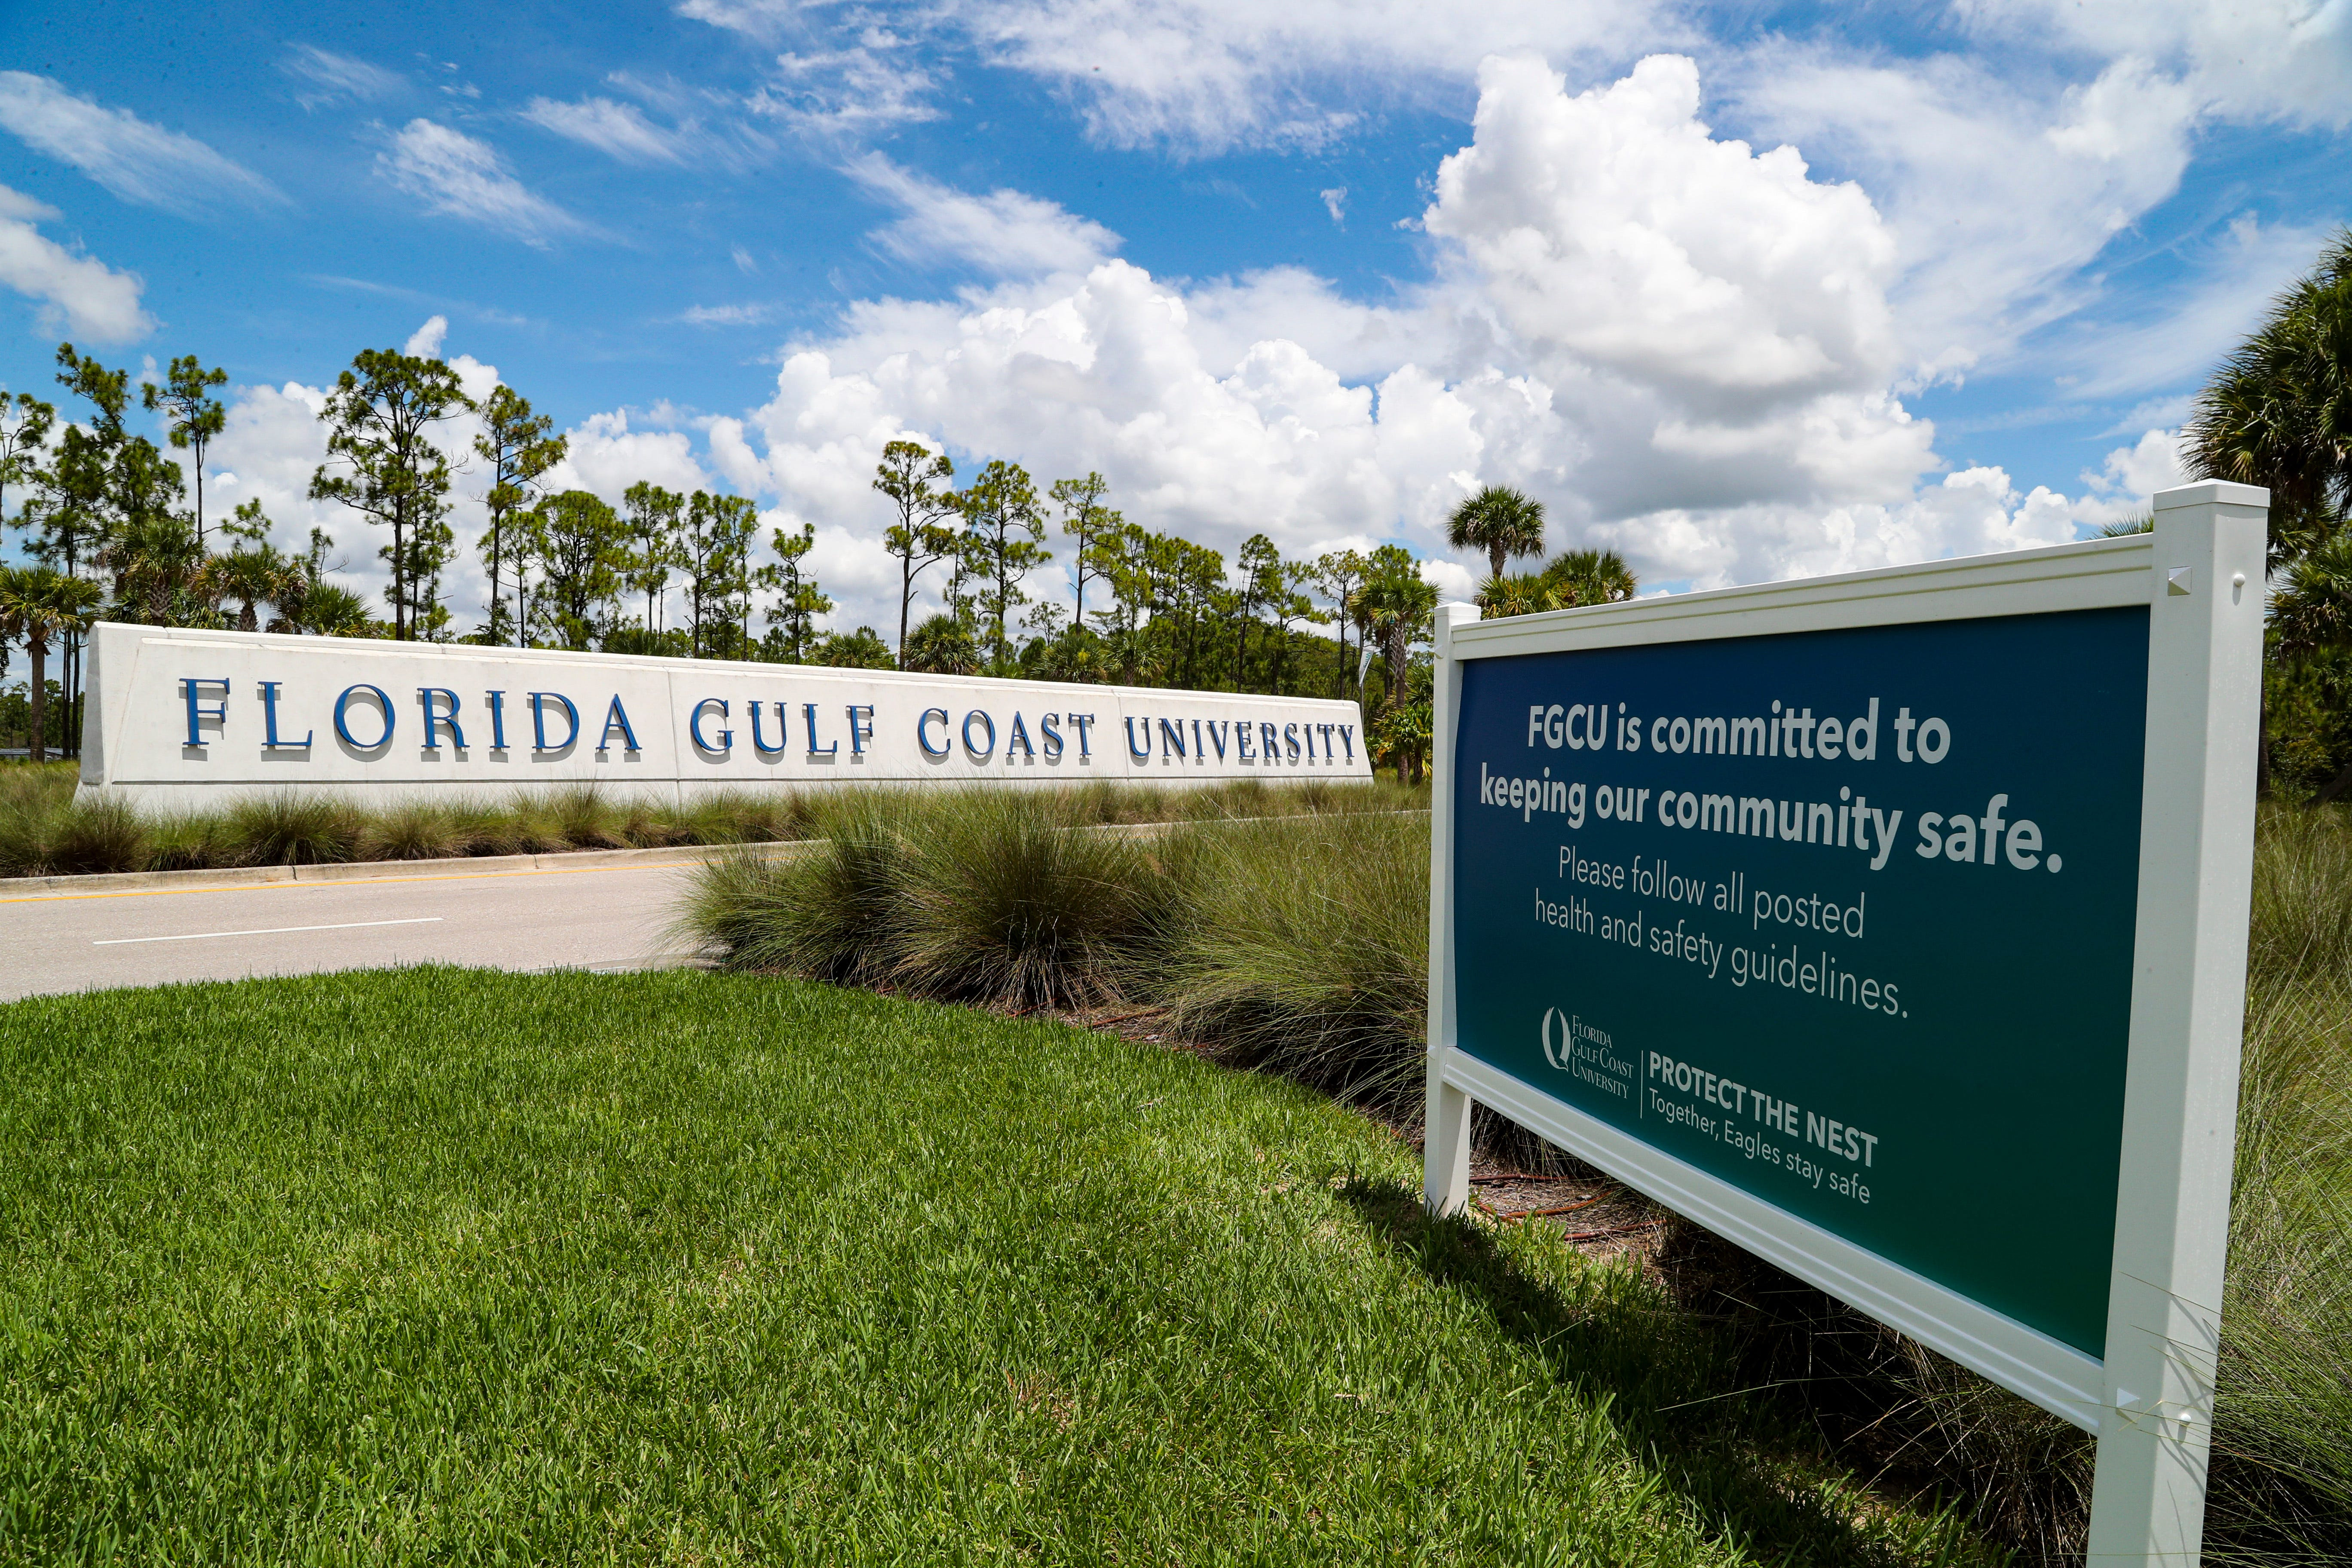 Two fraternities at Florida Gulf Coast University have been suspended for allegedly ignoring the school's new COVID-19 safety rules while throwing large, off-campus parties.